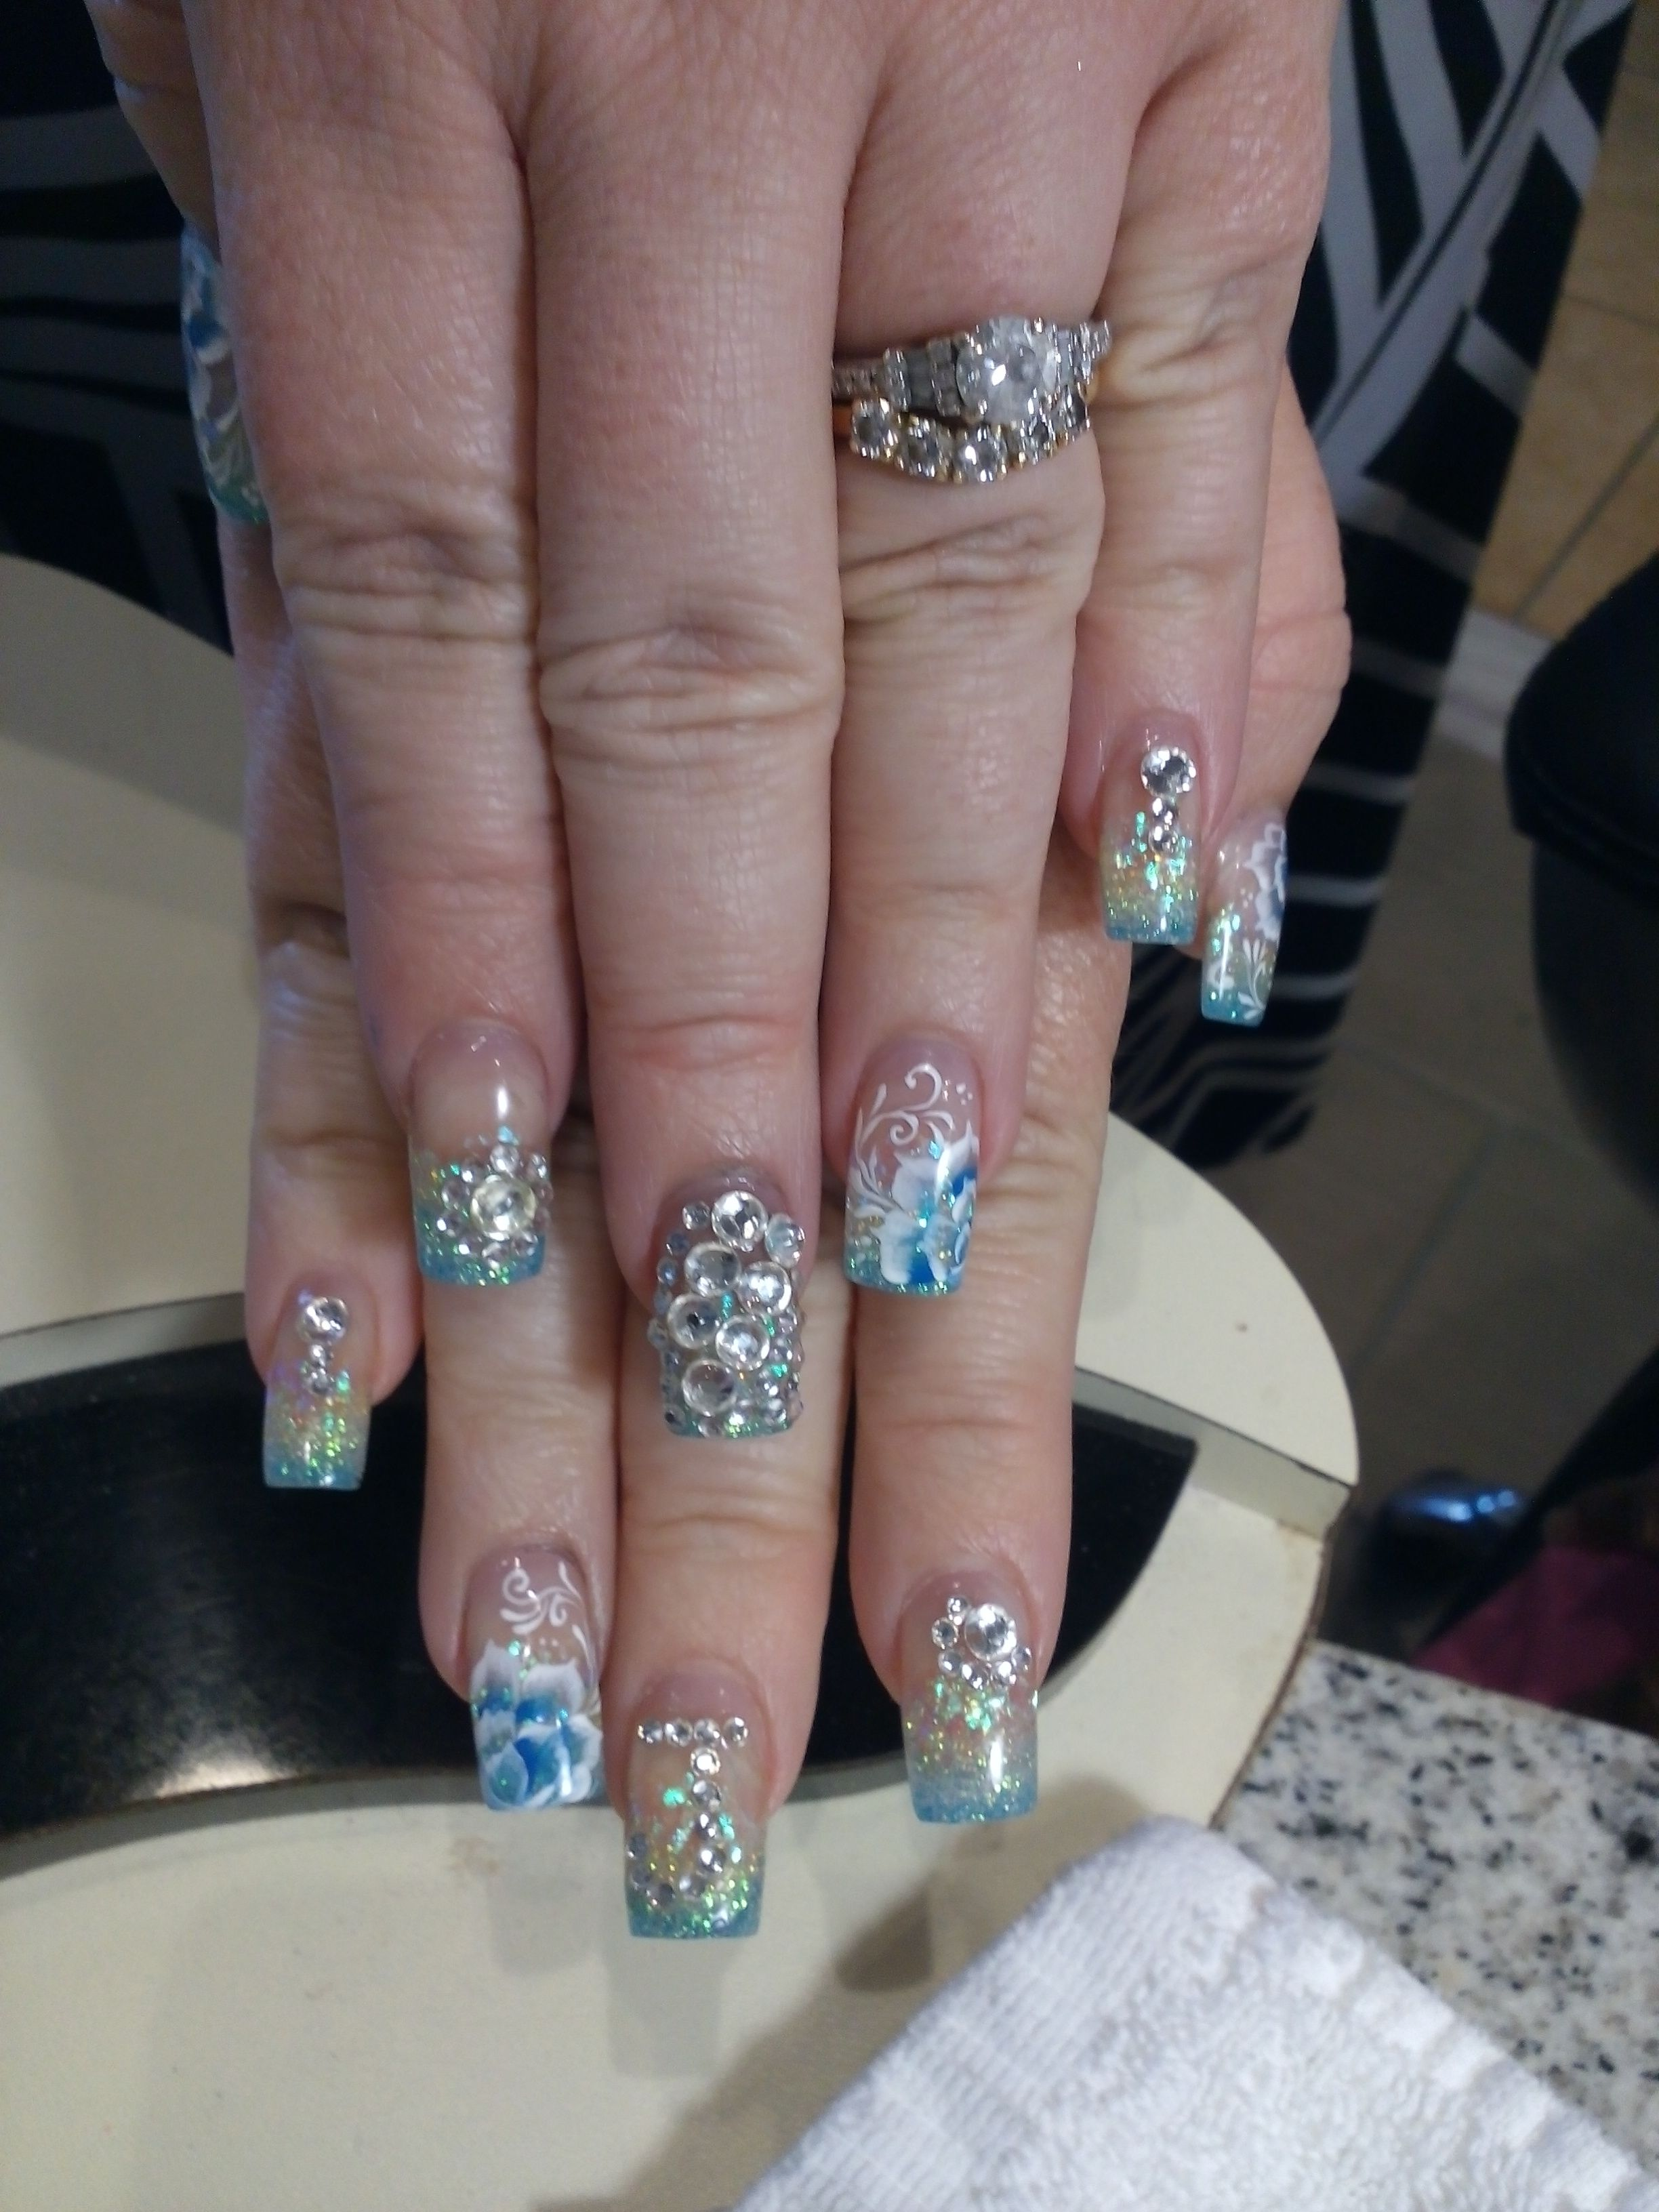 Nail Design By Megan Orchid Nails And Spa In Vallejo Nail Design